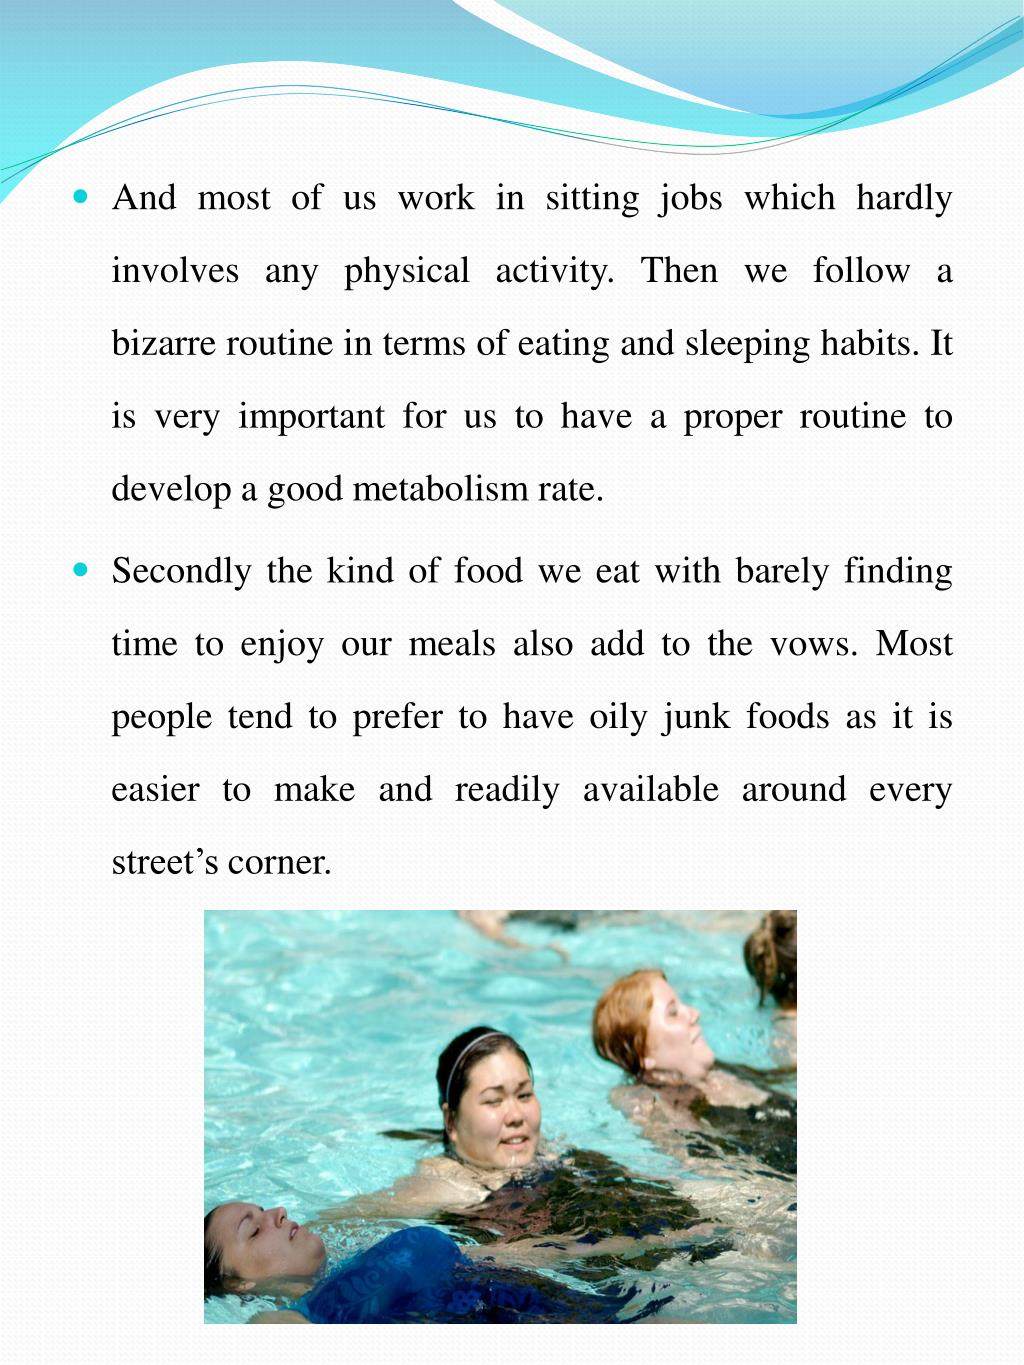 And most of us work in sitting jobs which hardly involves any physical activity. Then we follow a bizarre routine in terms of eating and sleeping habits. It is very important for us to have a proper routine to develop a good metabolism rate.